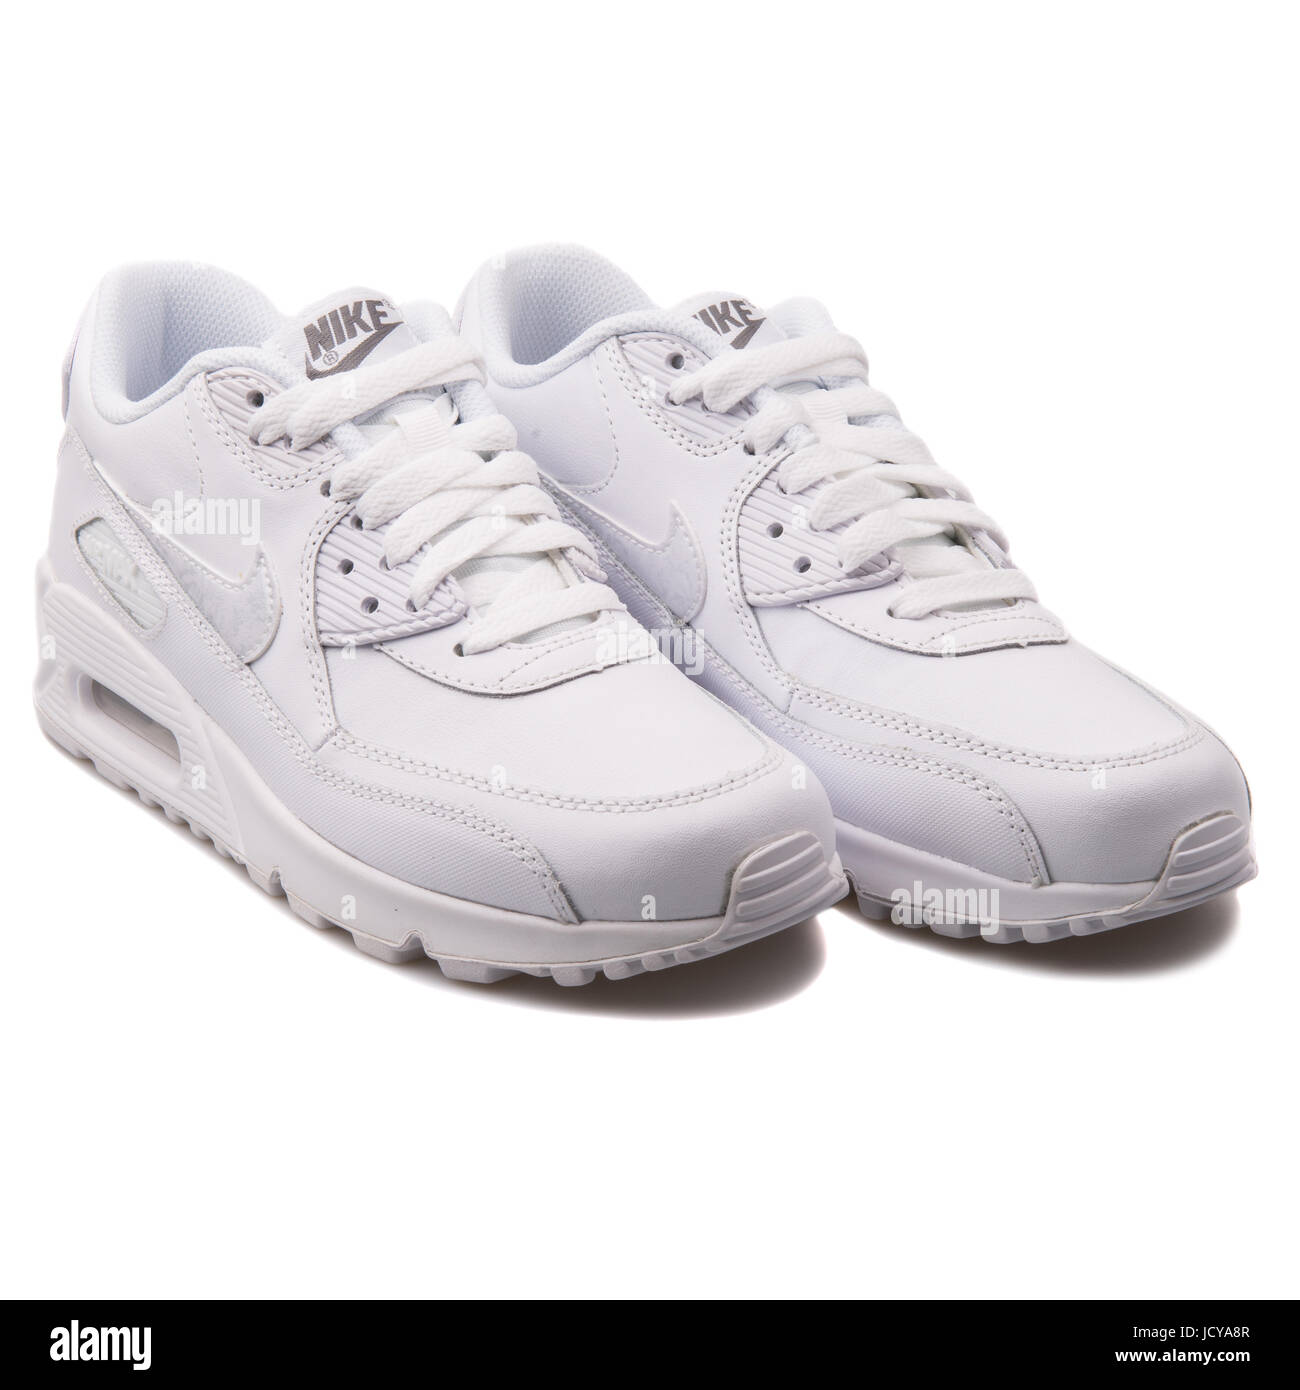 Running Shoes Sneakers Nike Stock Photos & Running Shoes